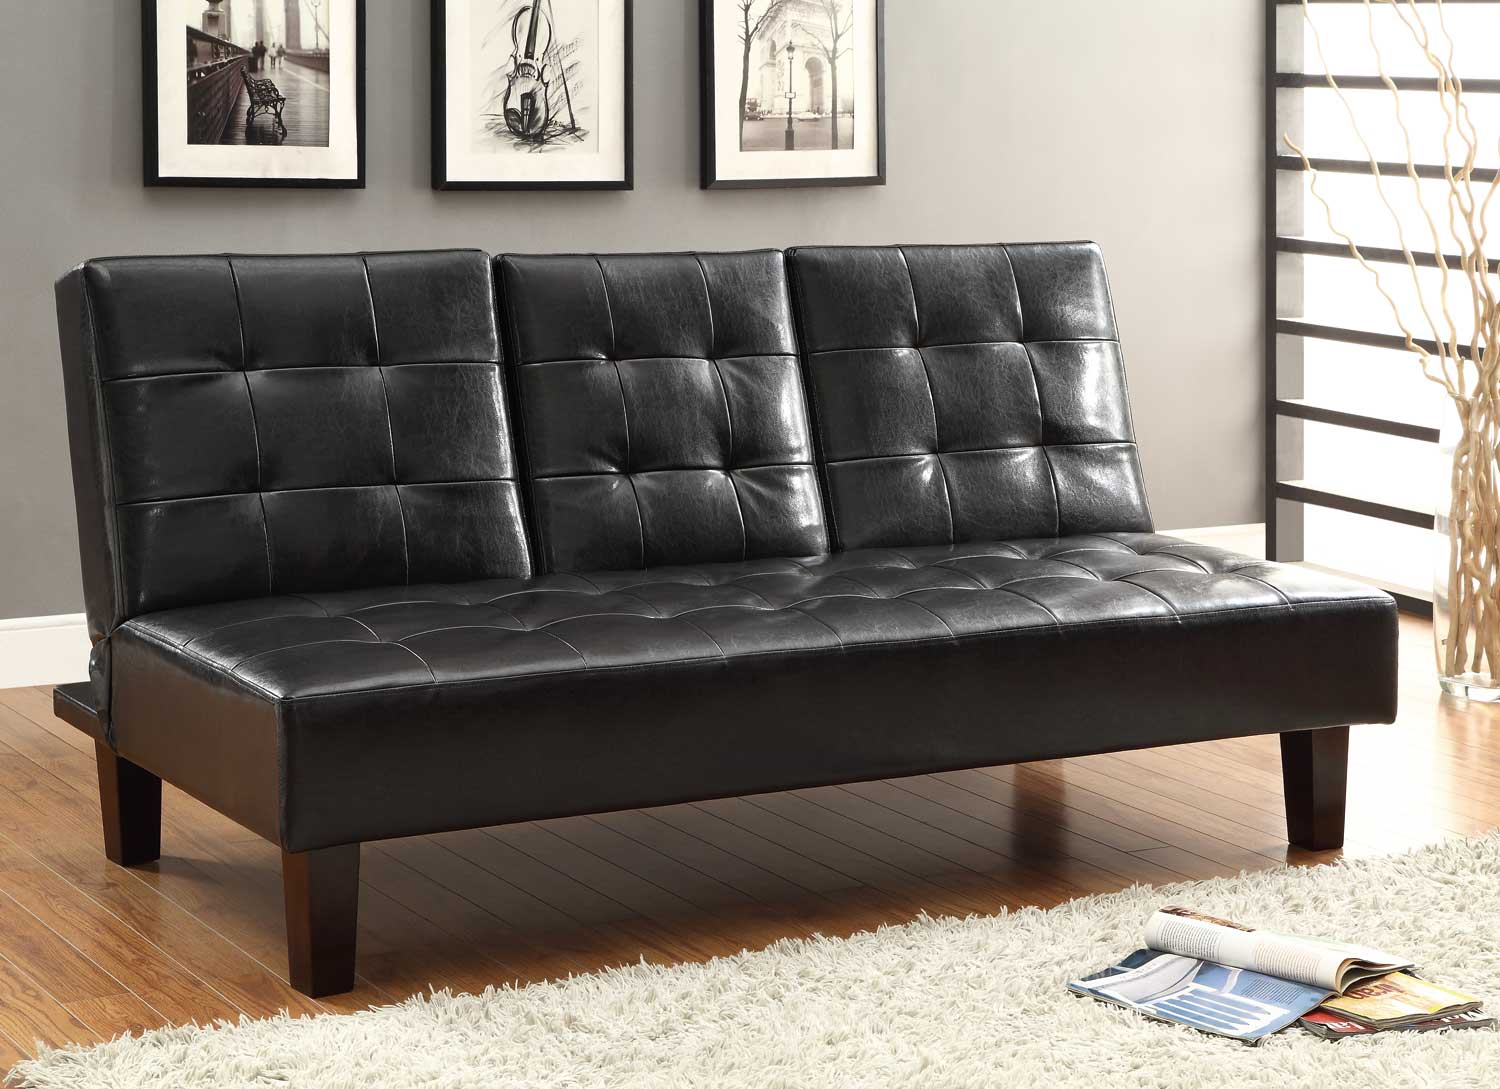 Homelegance Reel Clack Sofa Bed Dark Brown